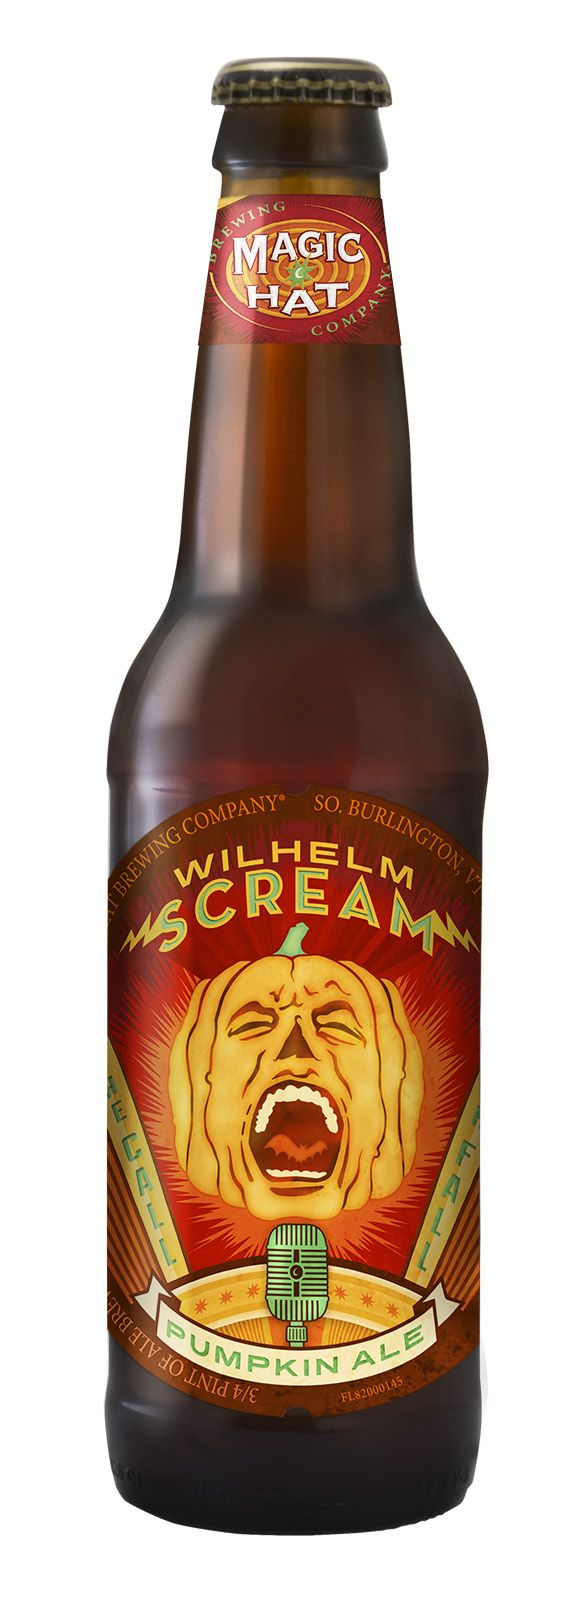 DELISH!! The Magic Hat Brewing Company recently released Wilhelm Scream, its first-ever pumpkin ale that's named for the iconic scream sound effect that's been used in over 200 movies.